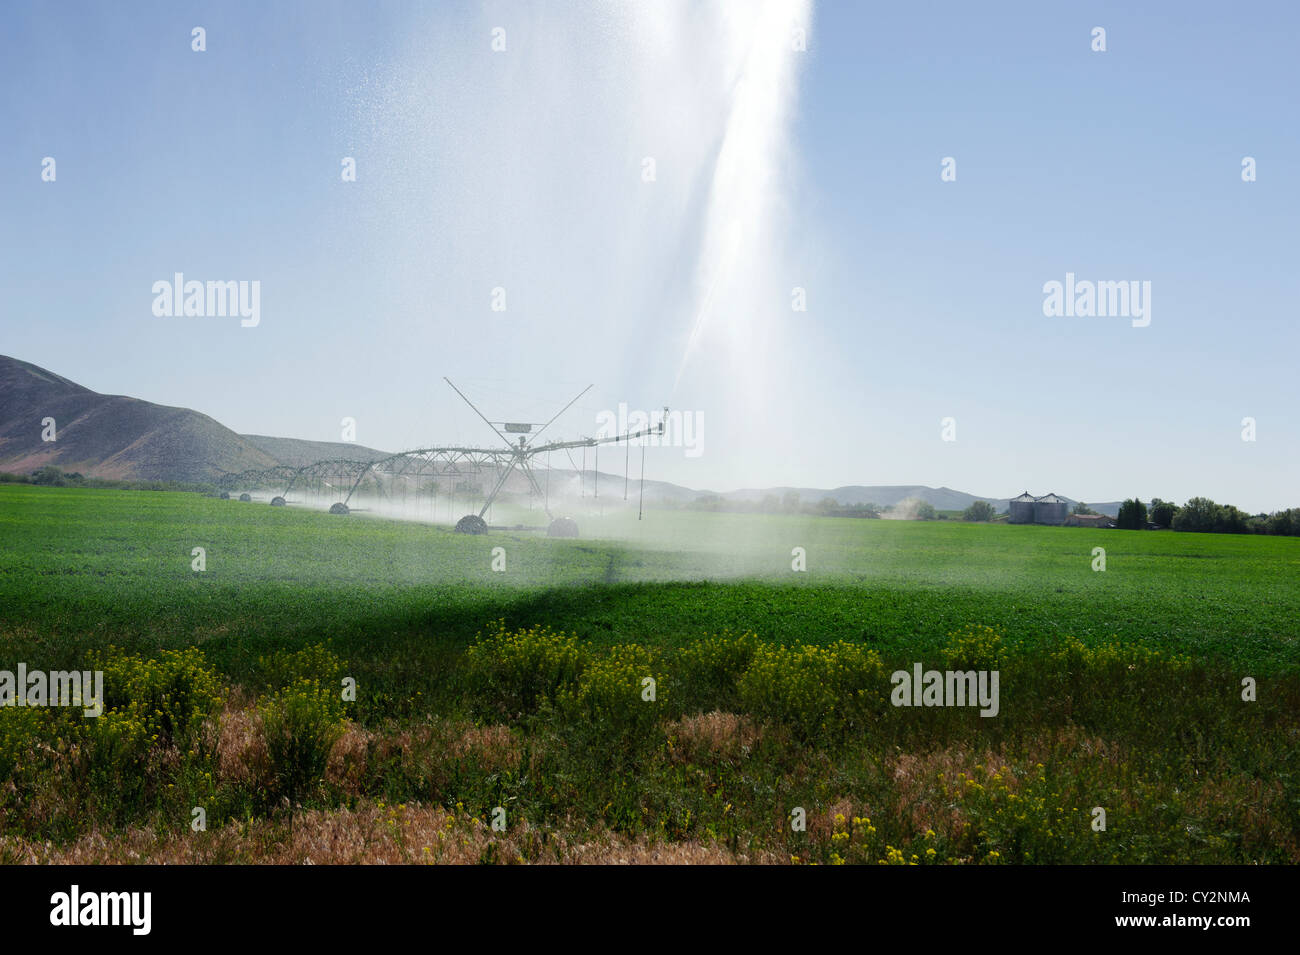 Irrigation pivot in an Alfalfa field in Southern Idaho, with the late afternoon sun illuminating the water - Stock Image